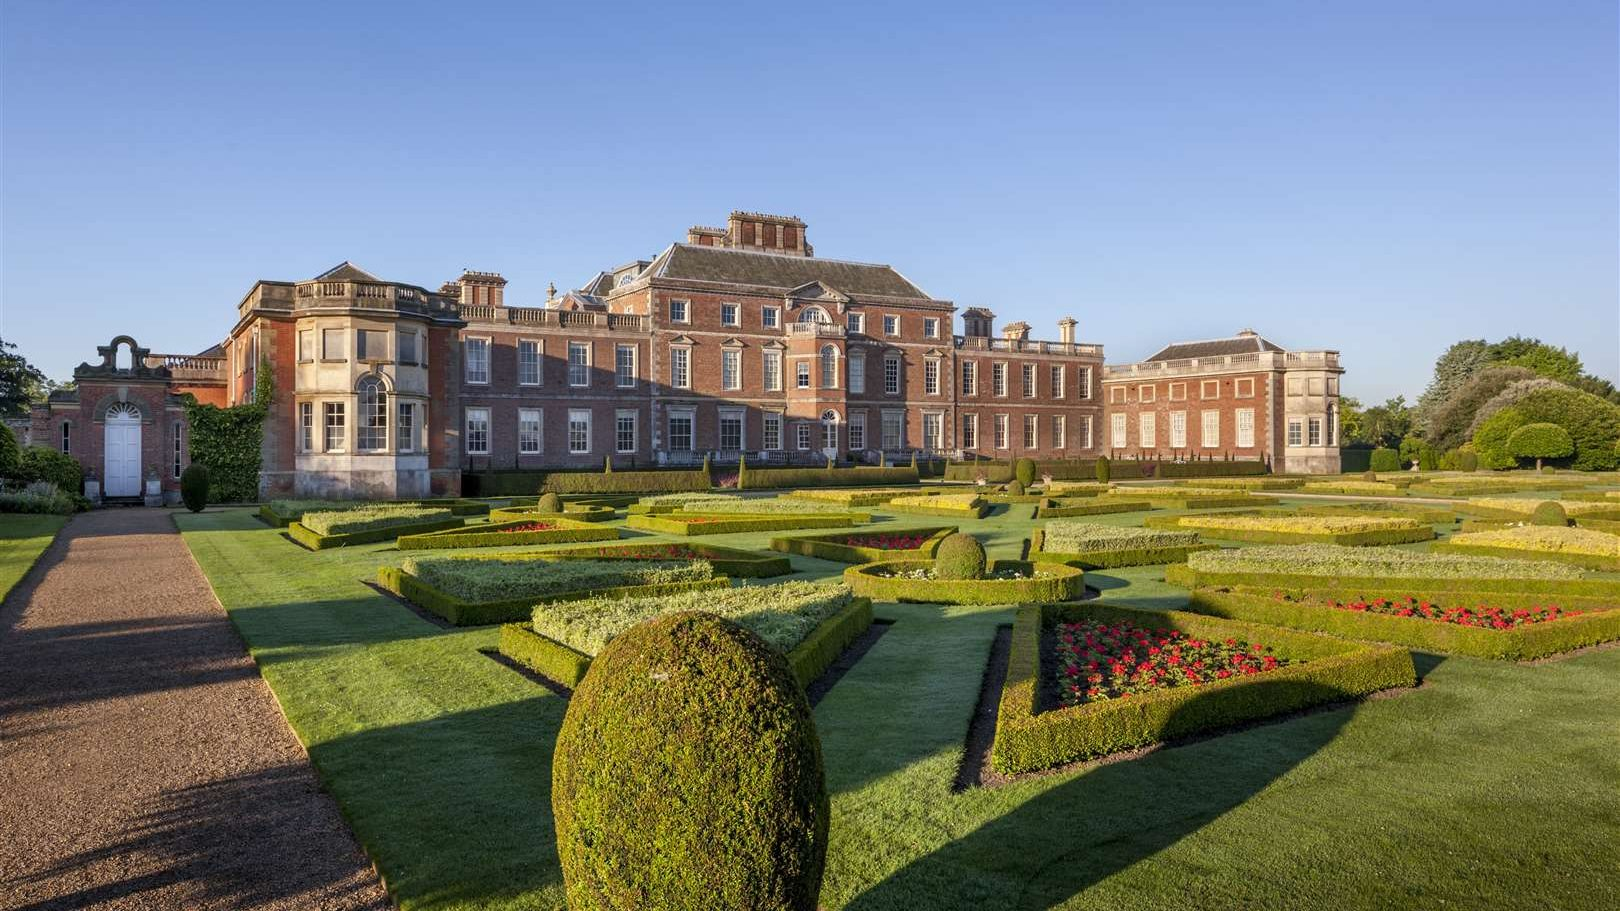 Wimpole Hall in Cambridgeshire is one of the properties listed in the National Trust report on slavery and colonialism